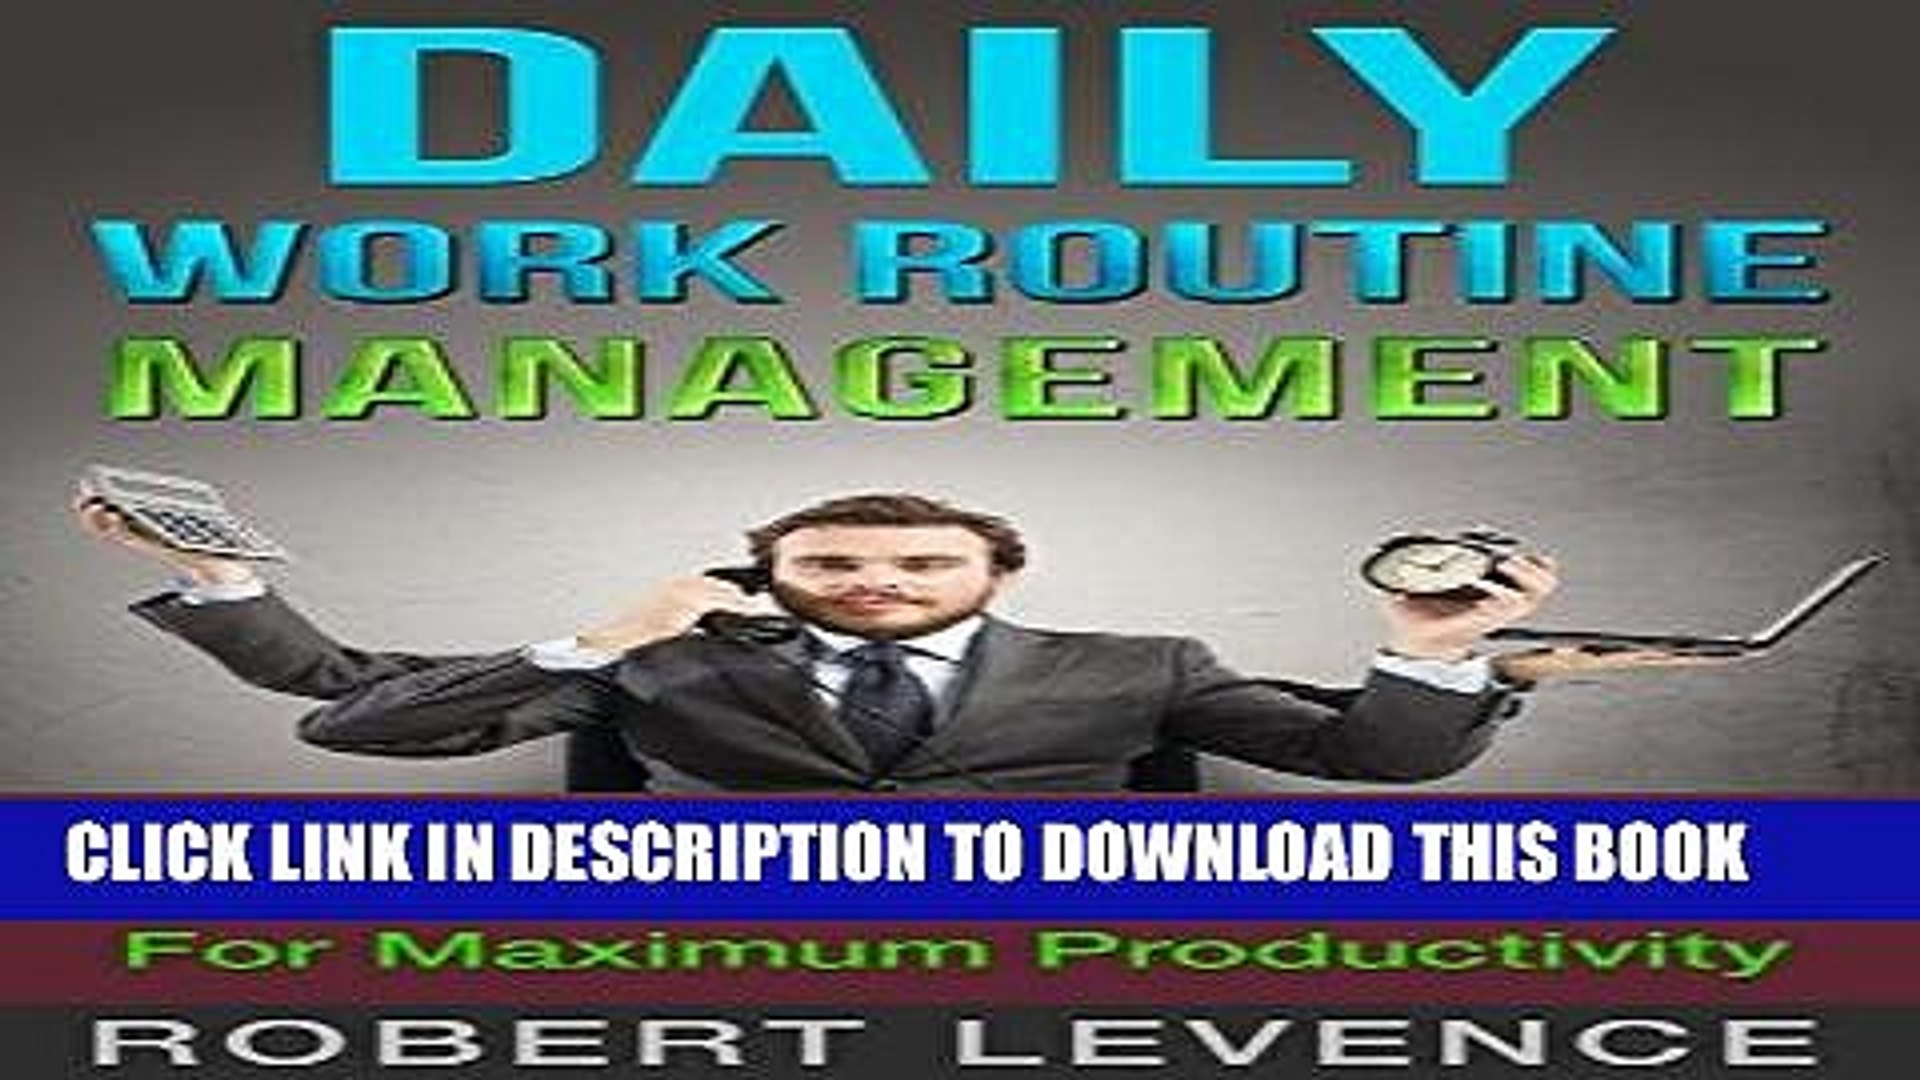 Read Now Daily Work Routine Management: The Ultimate Guide On A Functional Work Routine For